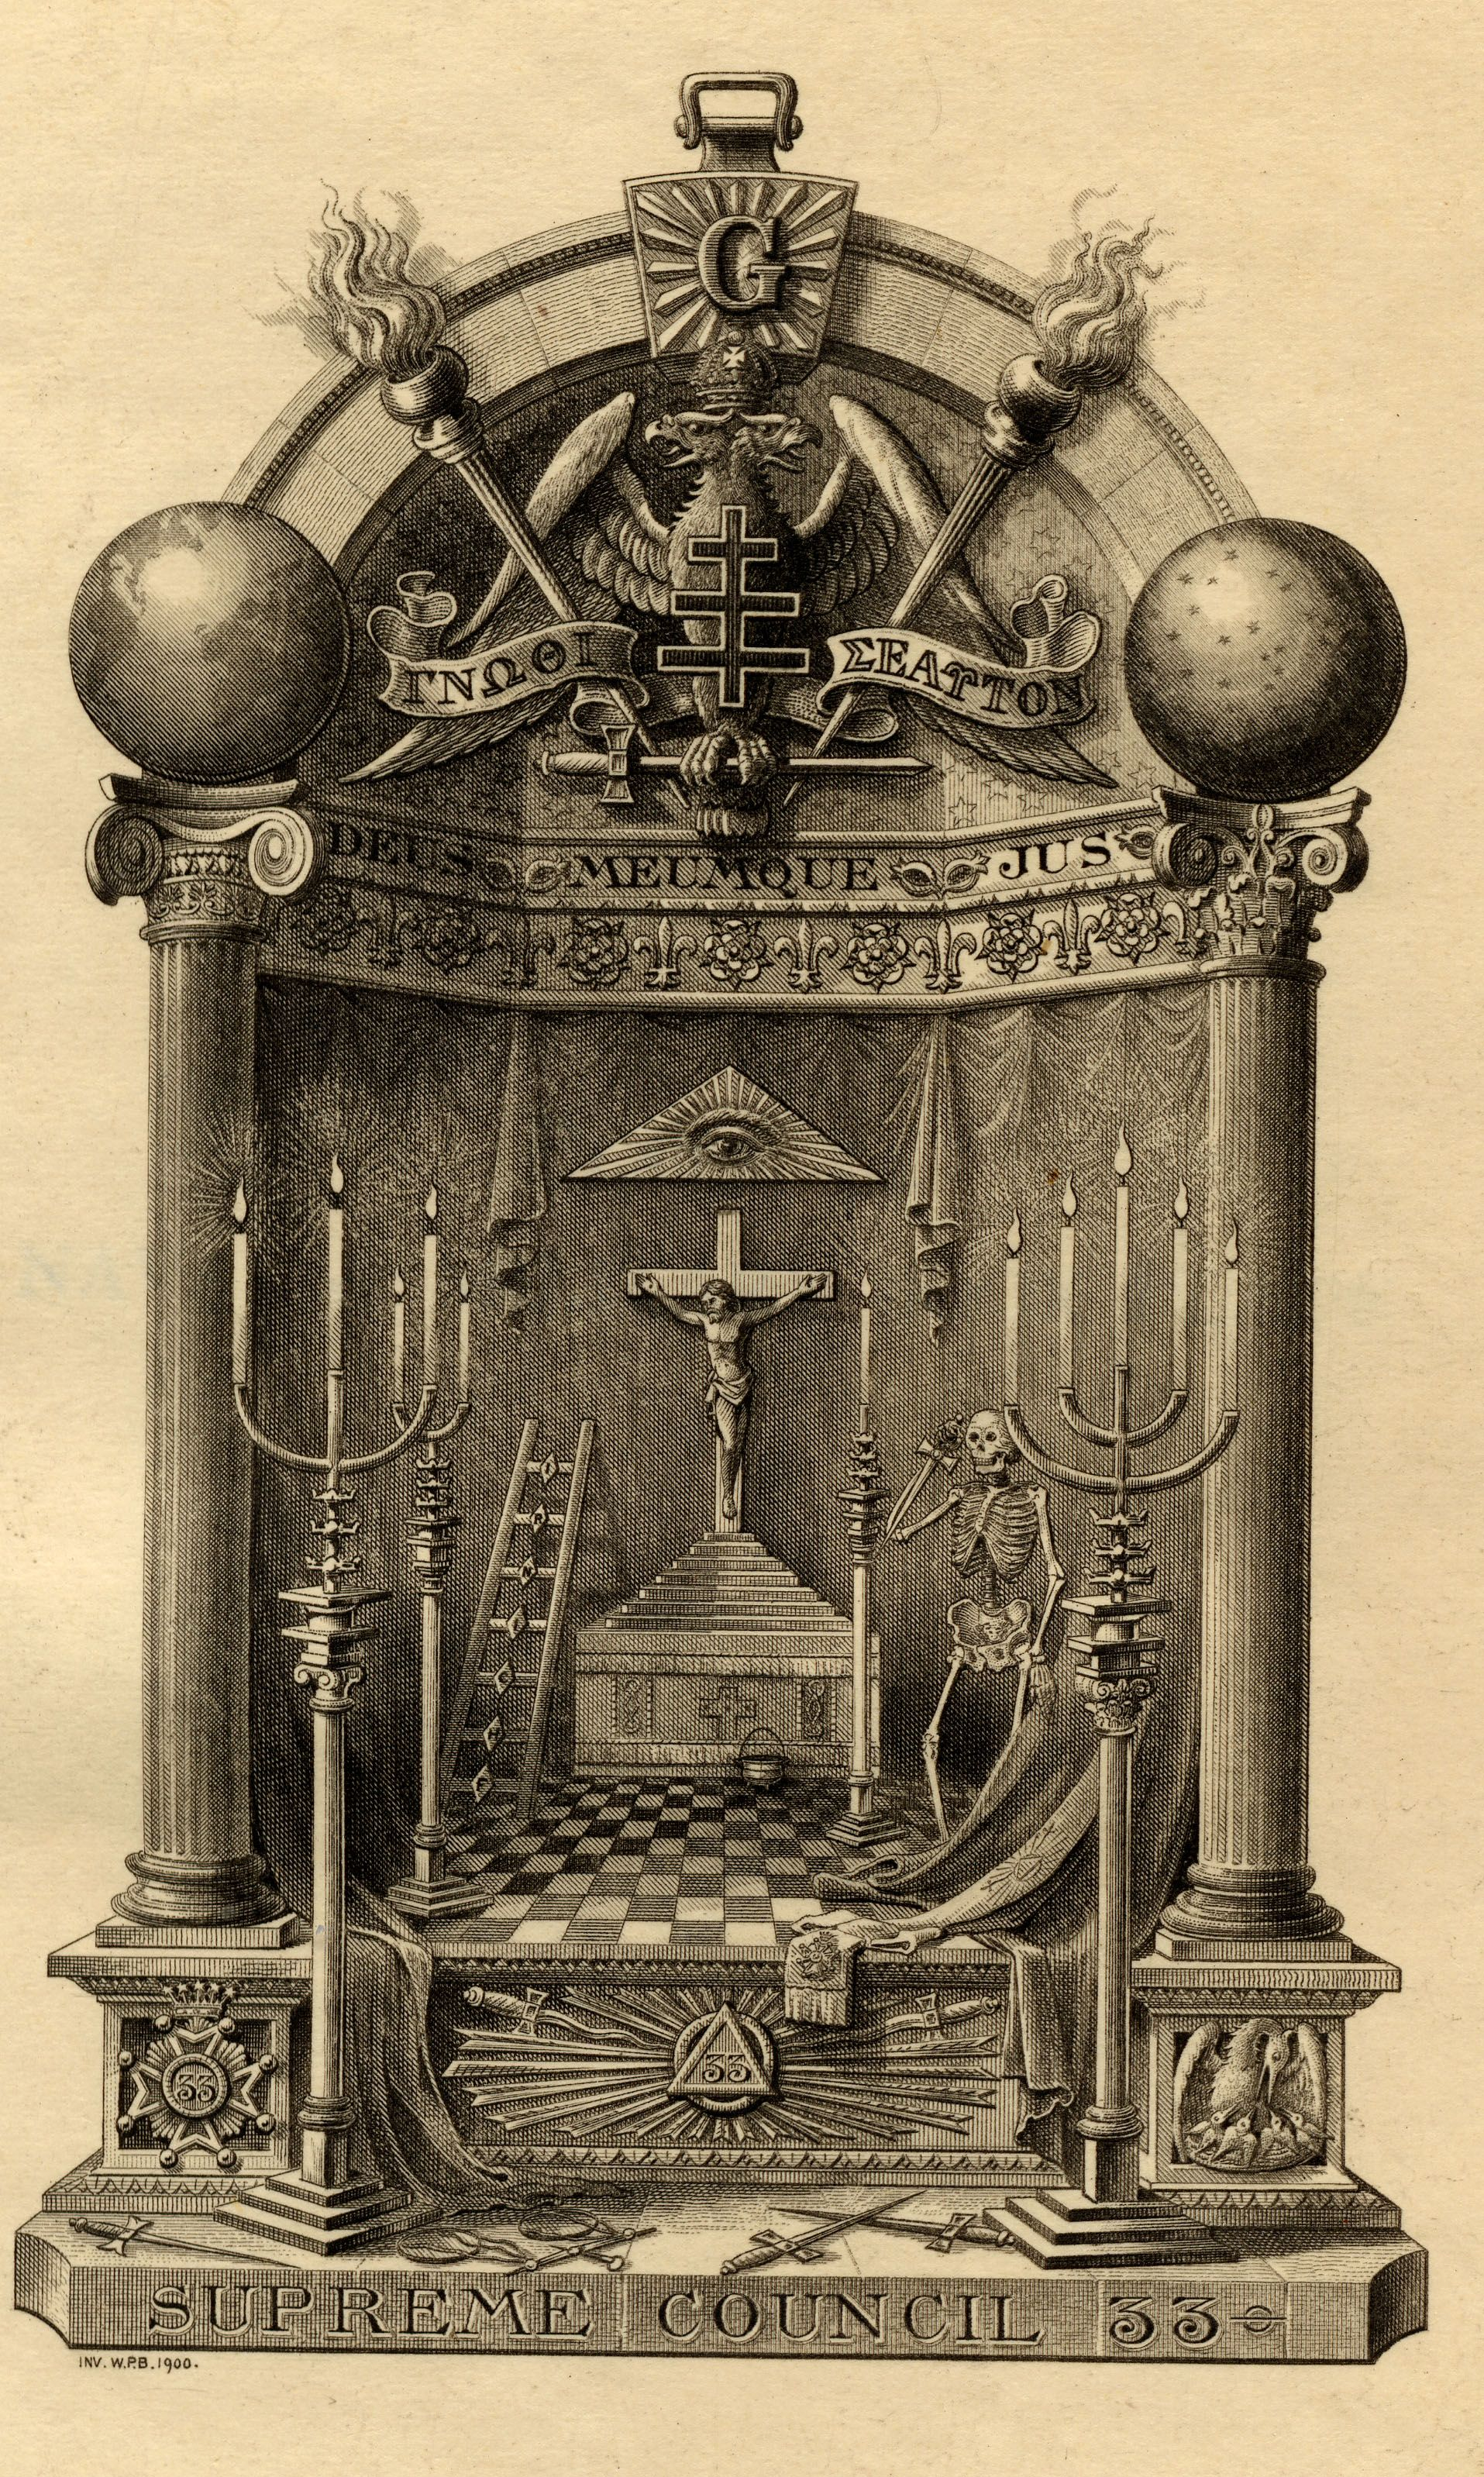 2 Chronicles 317 1 Kings 721 Zechariah 43 The Name Boaz Zachariah Isabel Electrical Symbols Literally Means By Strength